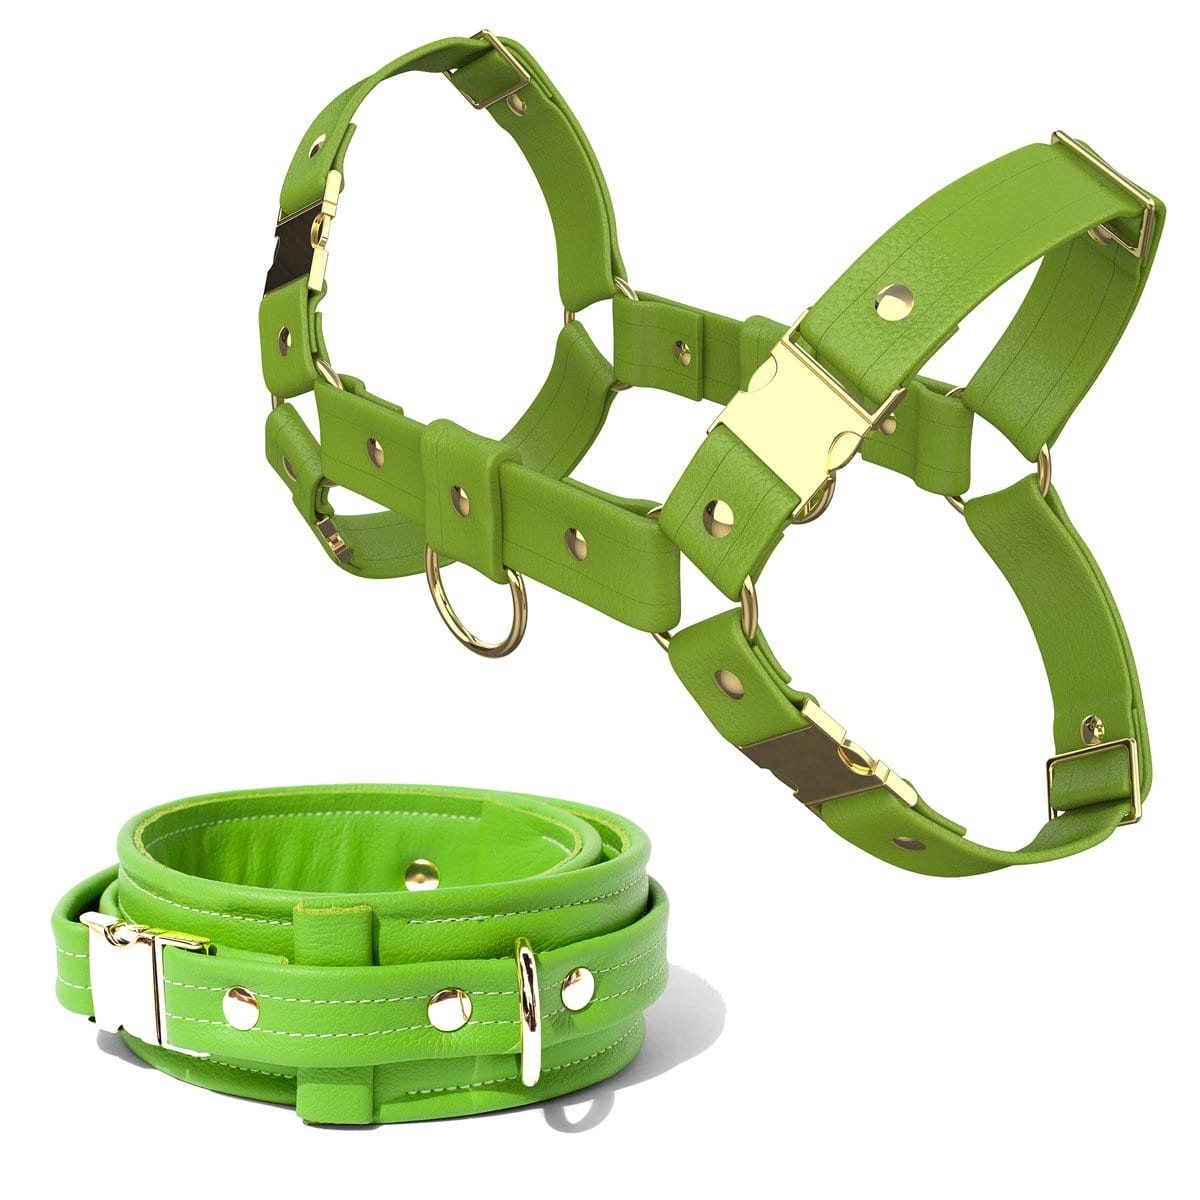 Bulldog Harness + Collar – Standard Leather – Green - Gold Metal Fittings